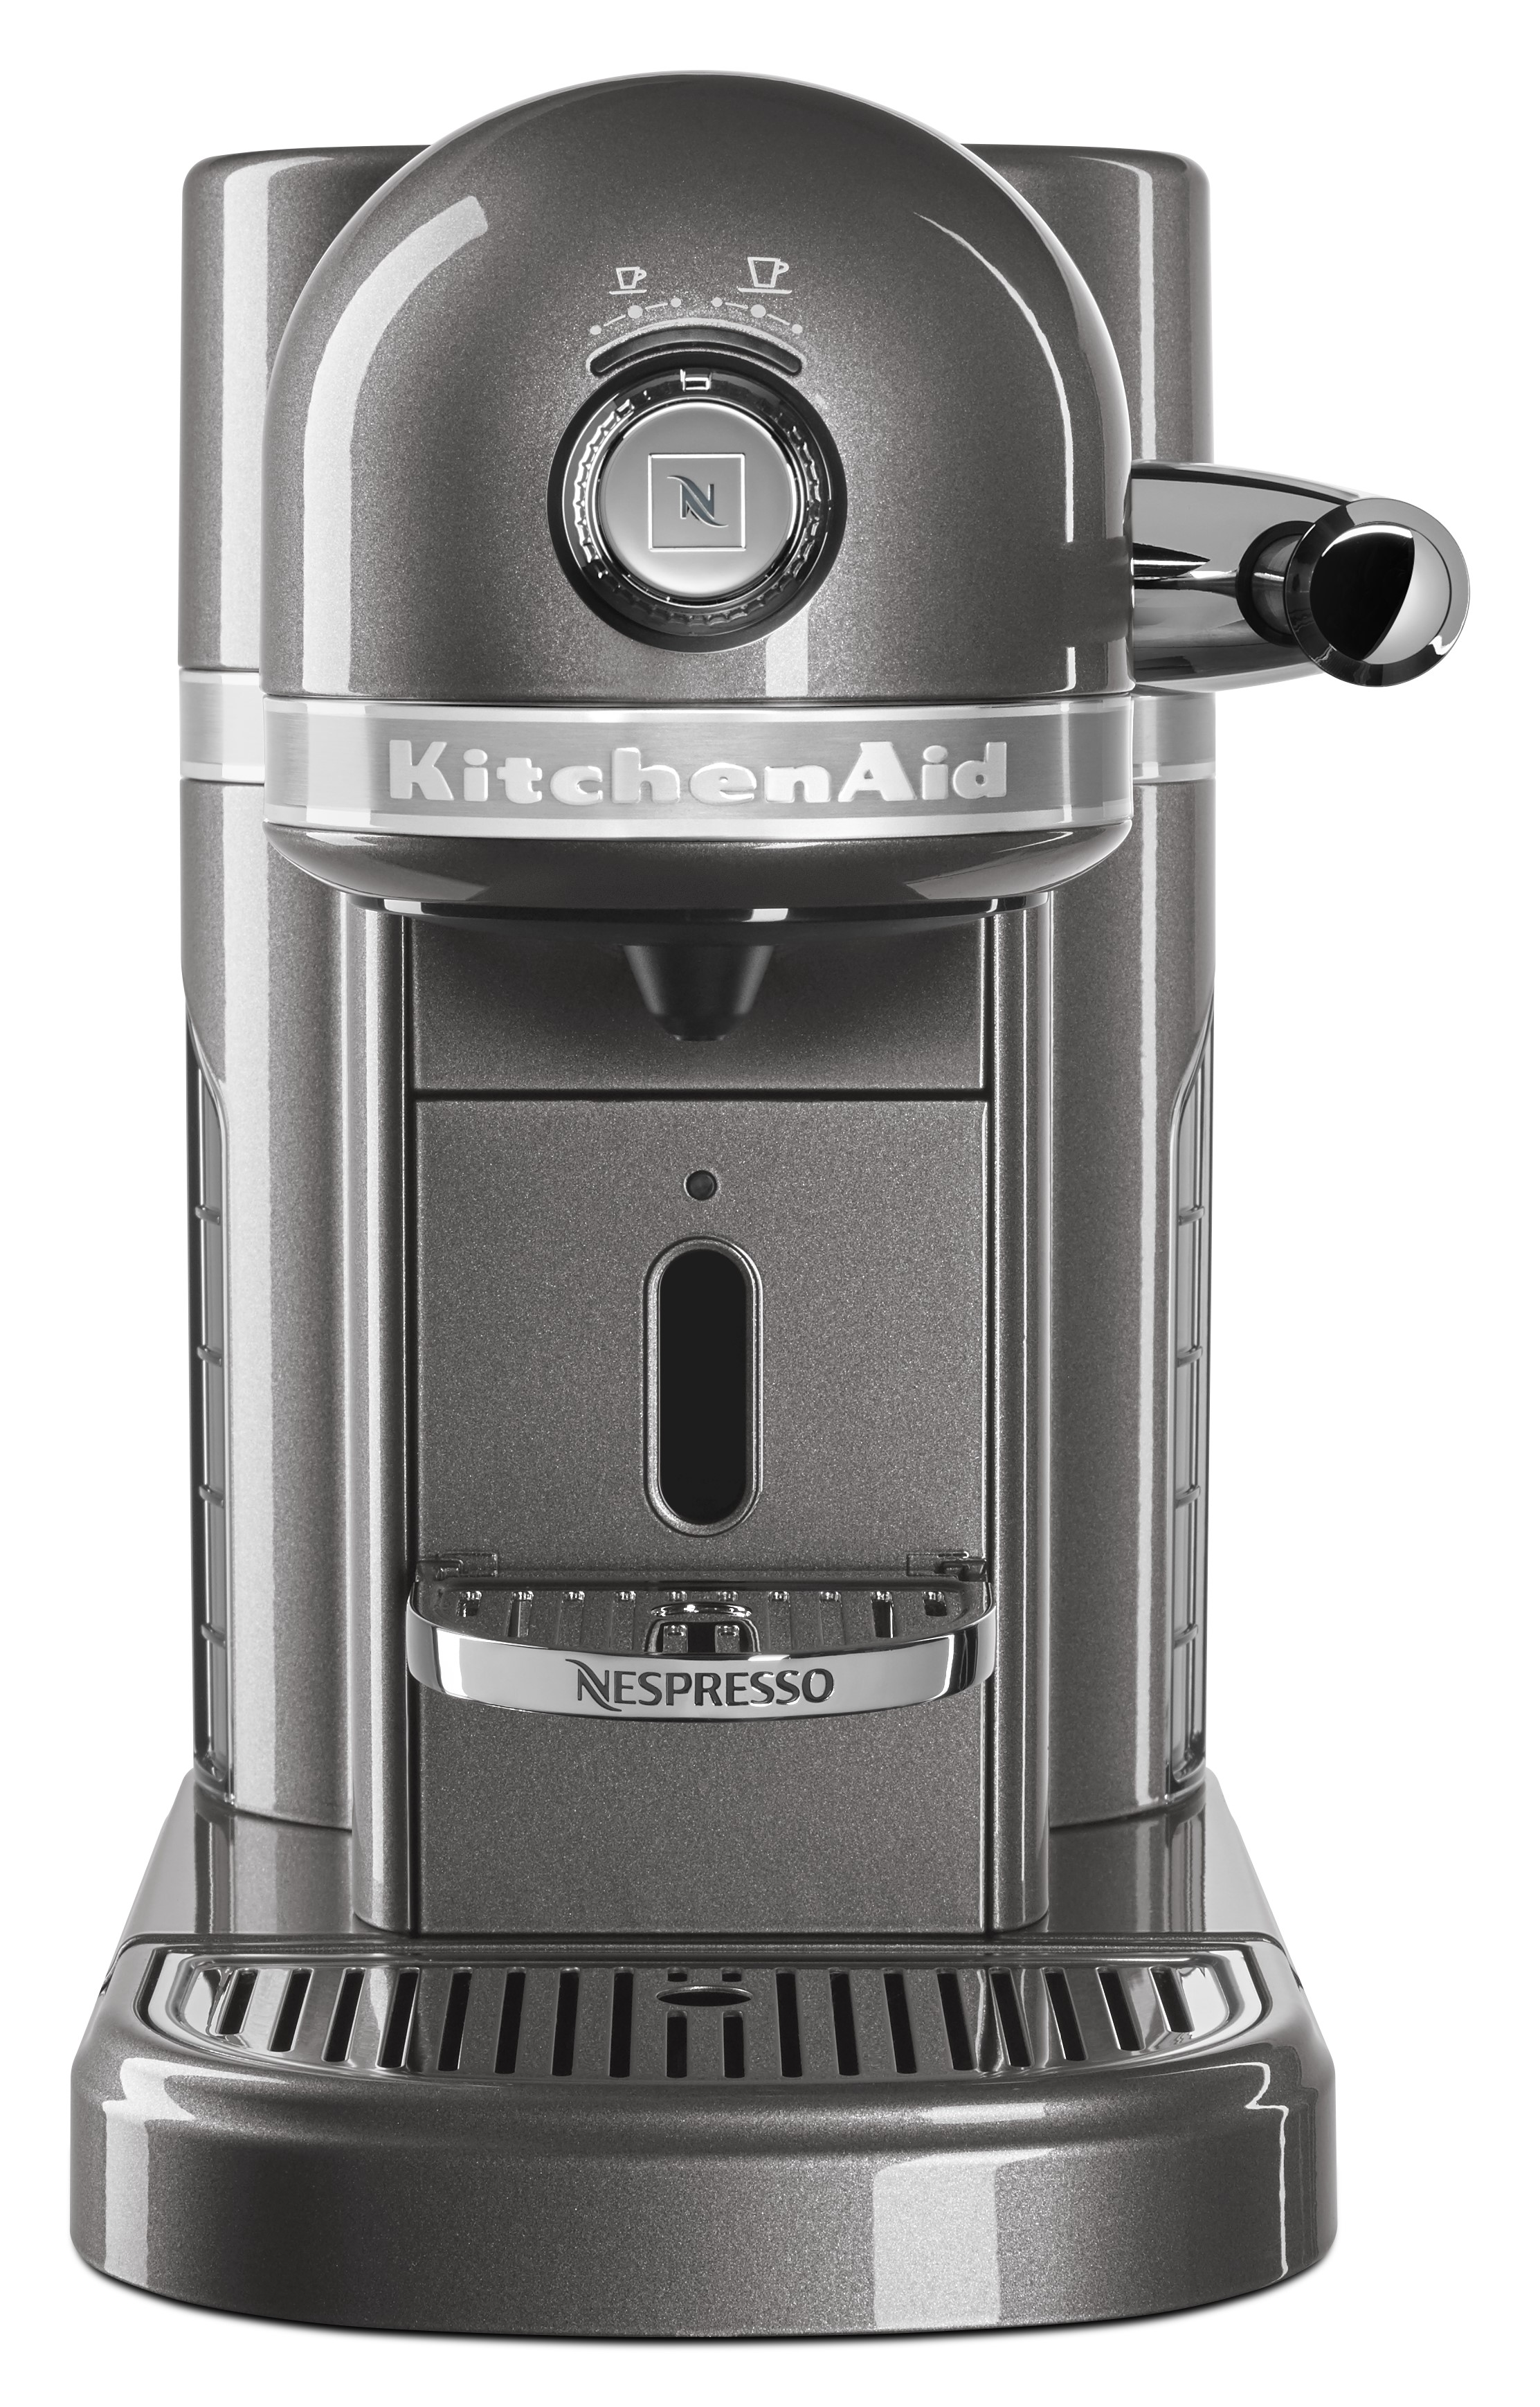 KitchenAid KES0504MS with Milk Frother Nespresso Espresso Maker